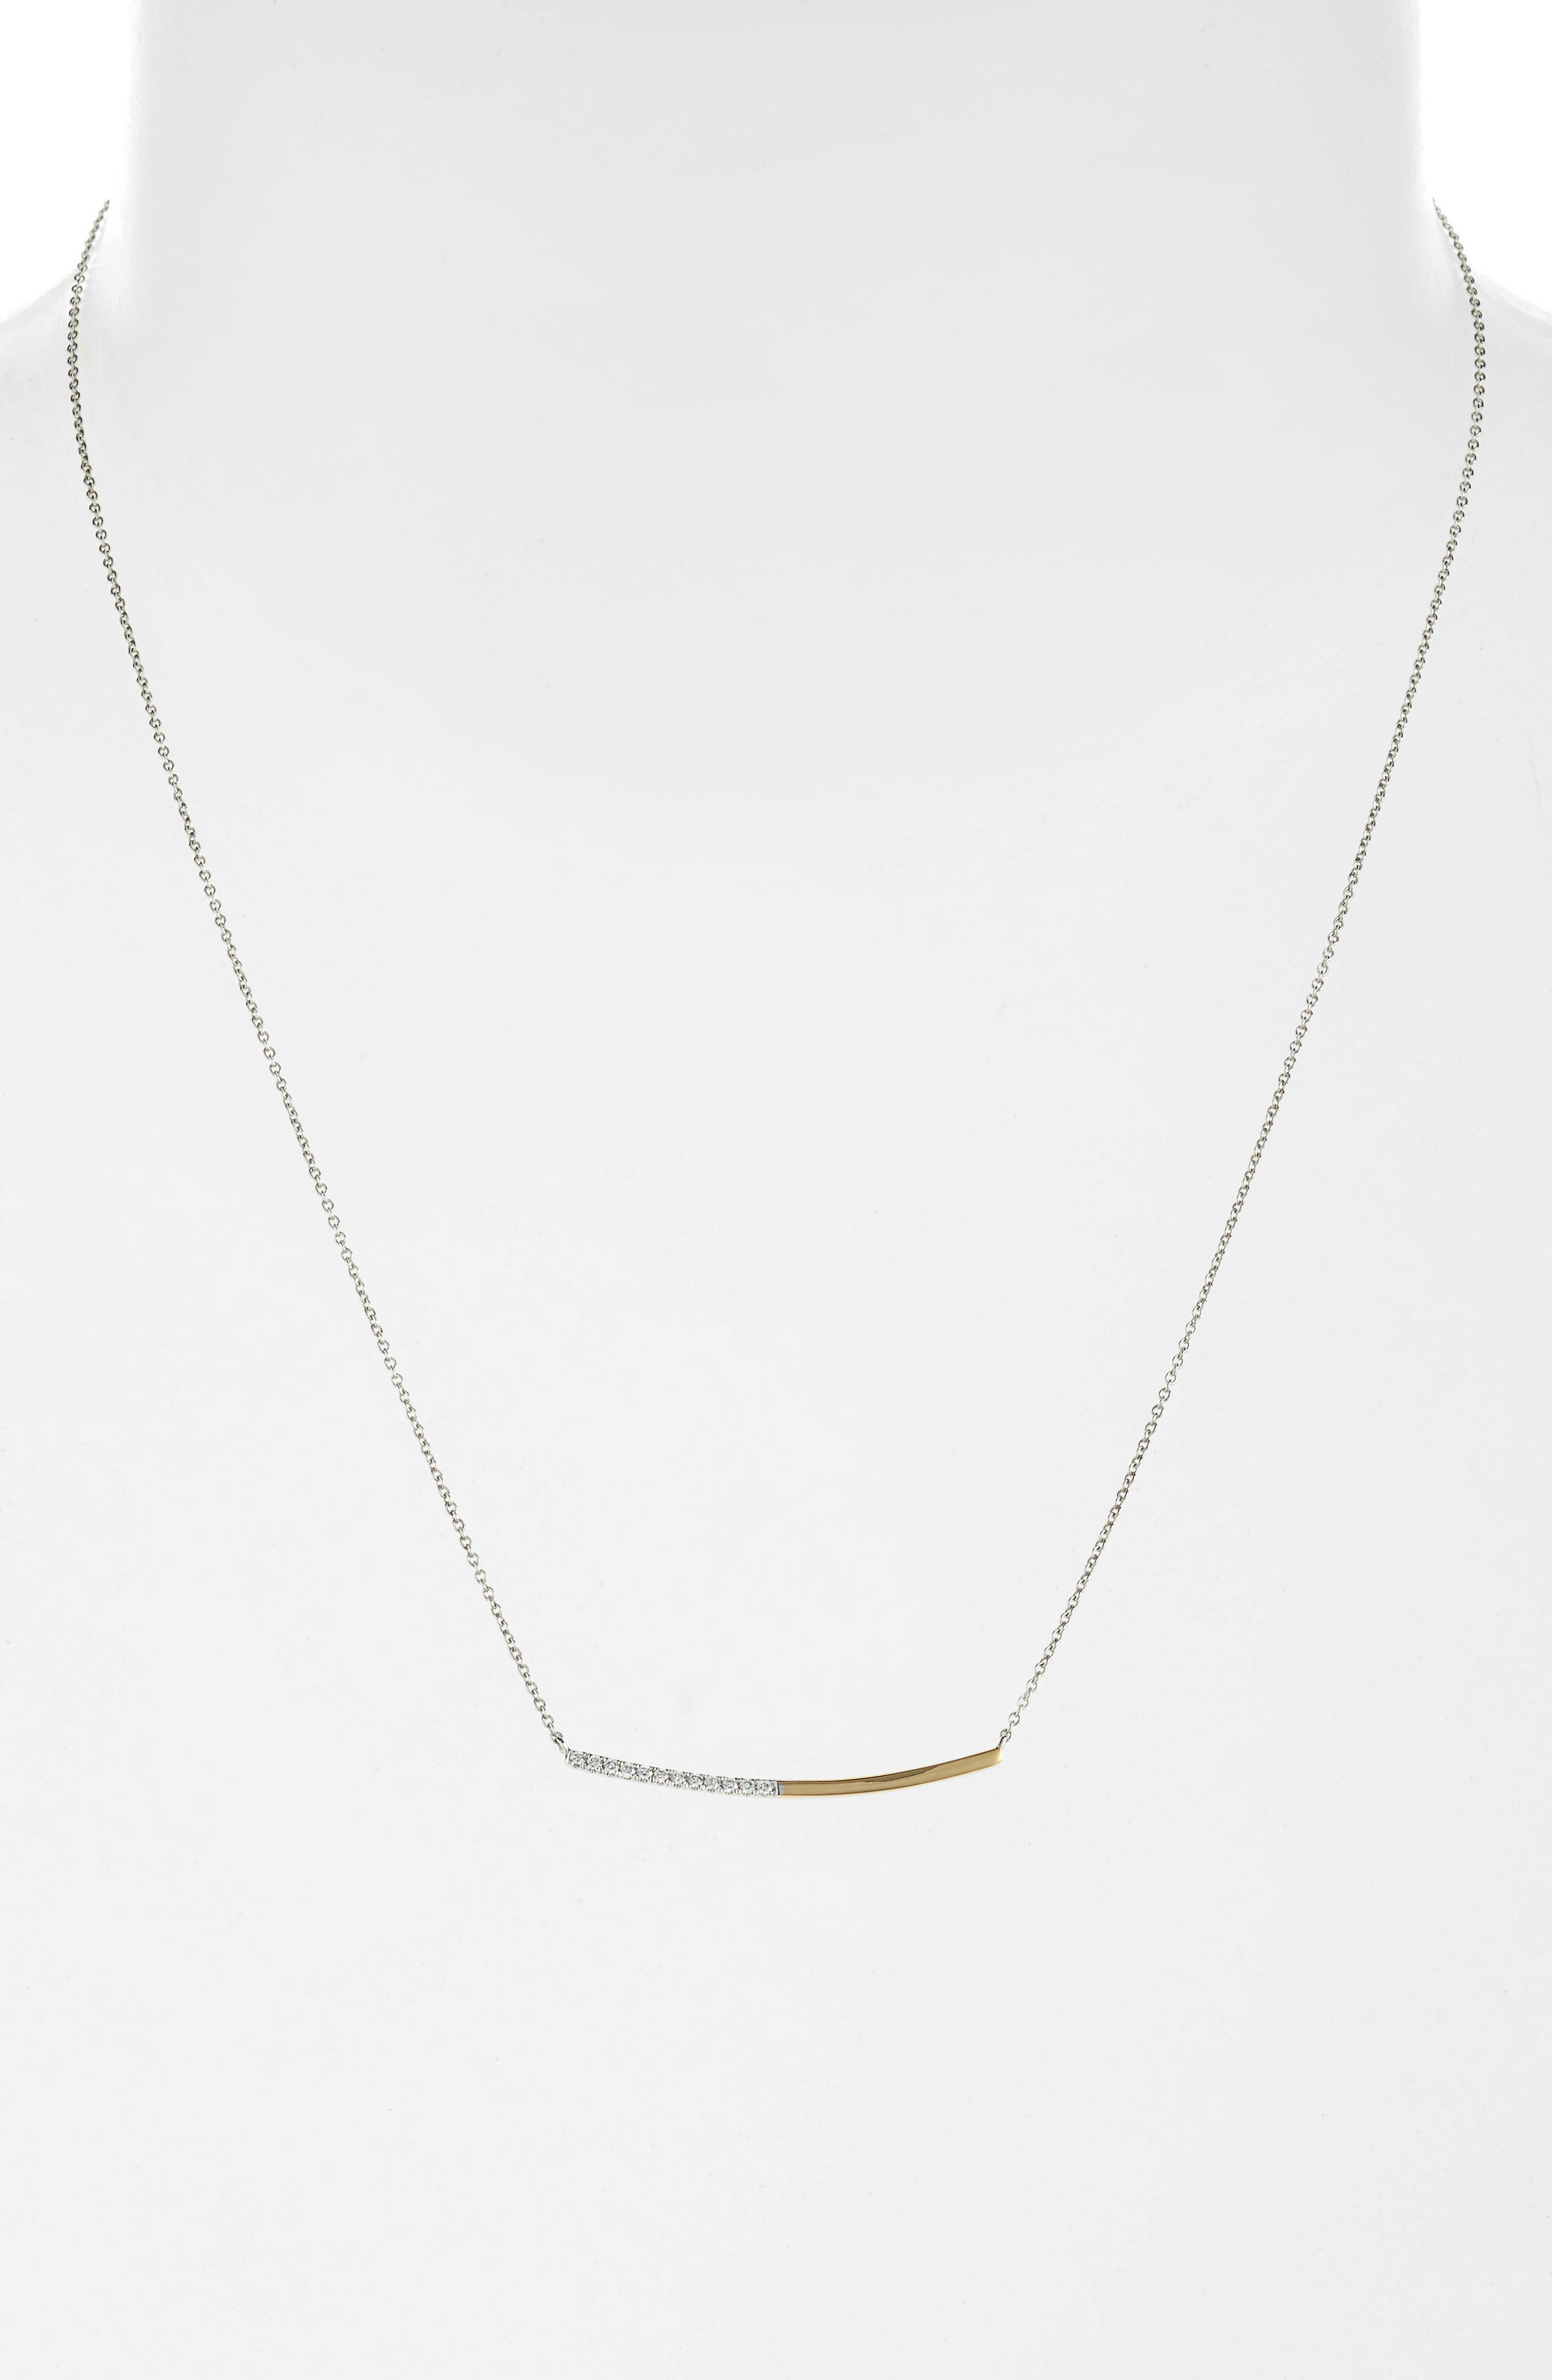 Two-Tone Curved Diamond Bar Neck,                             Alternate thumbnail 2, color,                             YELLOW GOLD/ WHITE GOLD